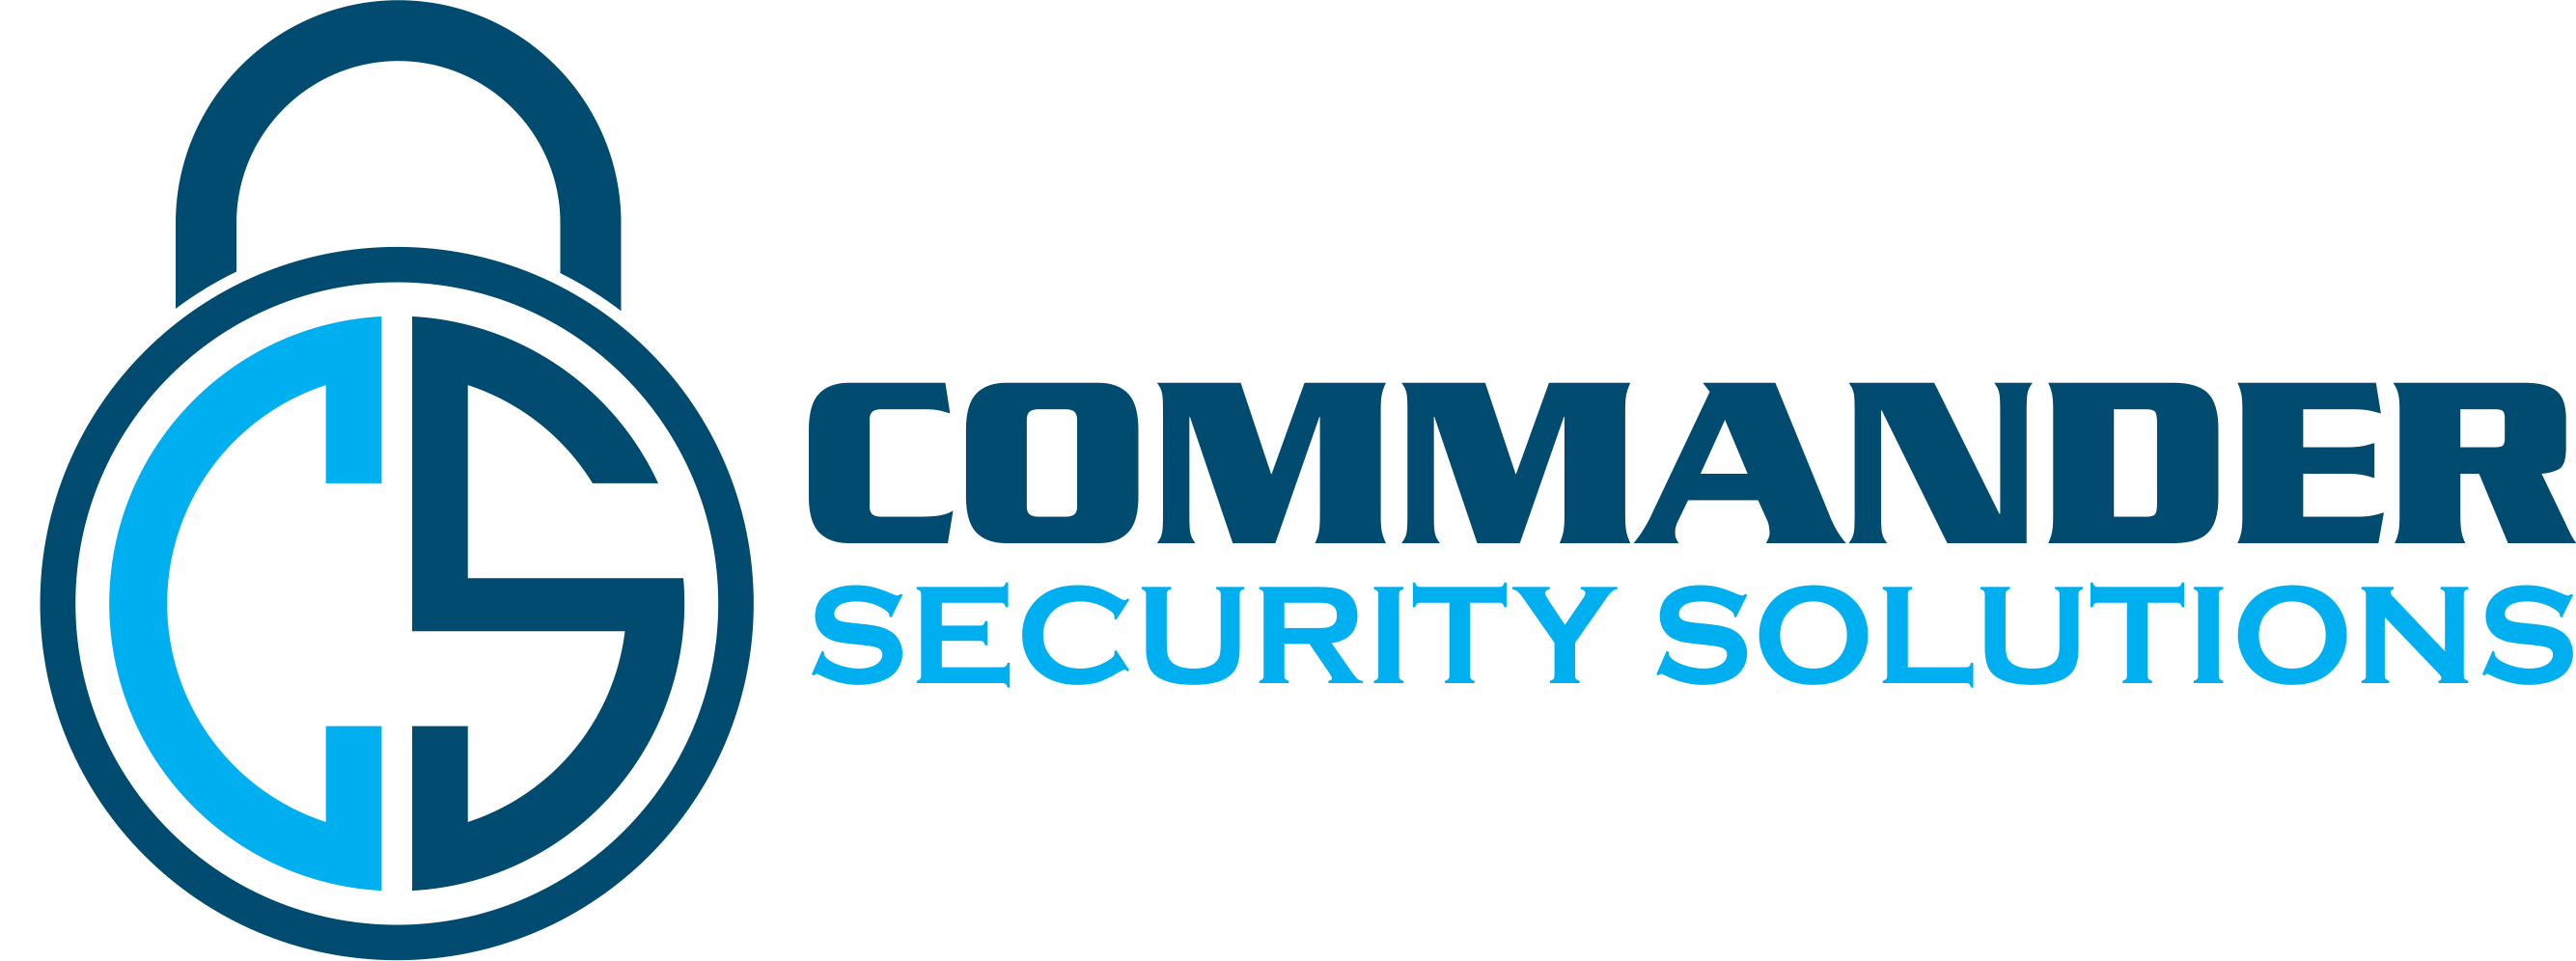 Commander Security Solutions